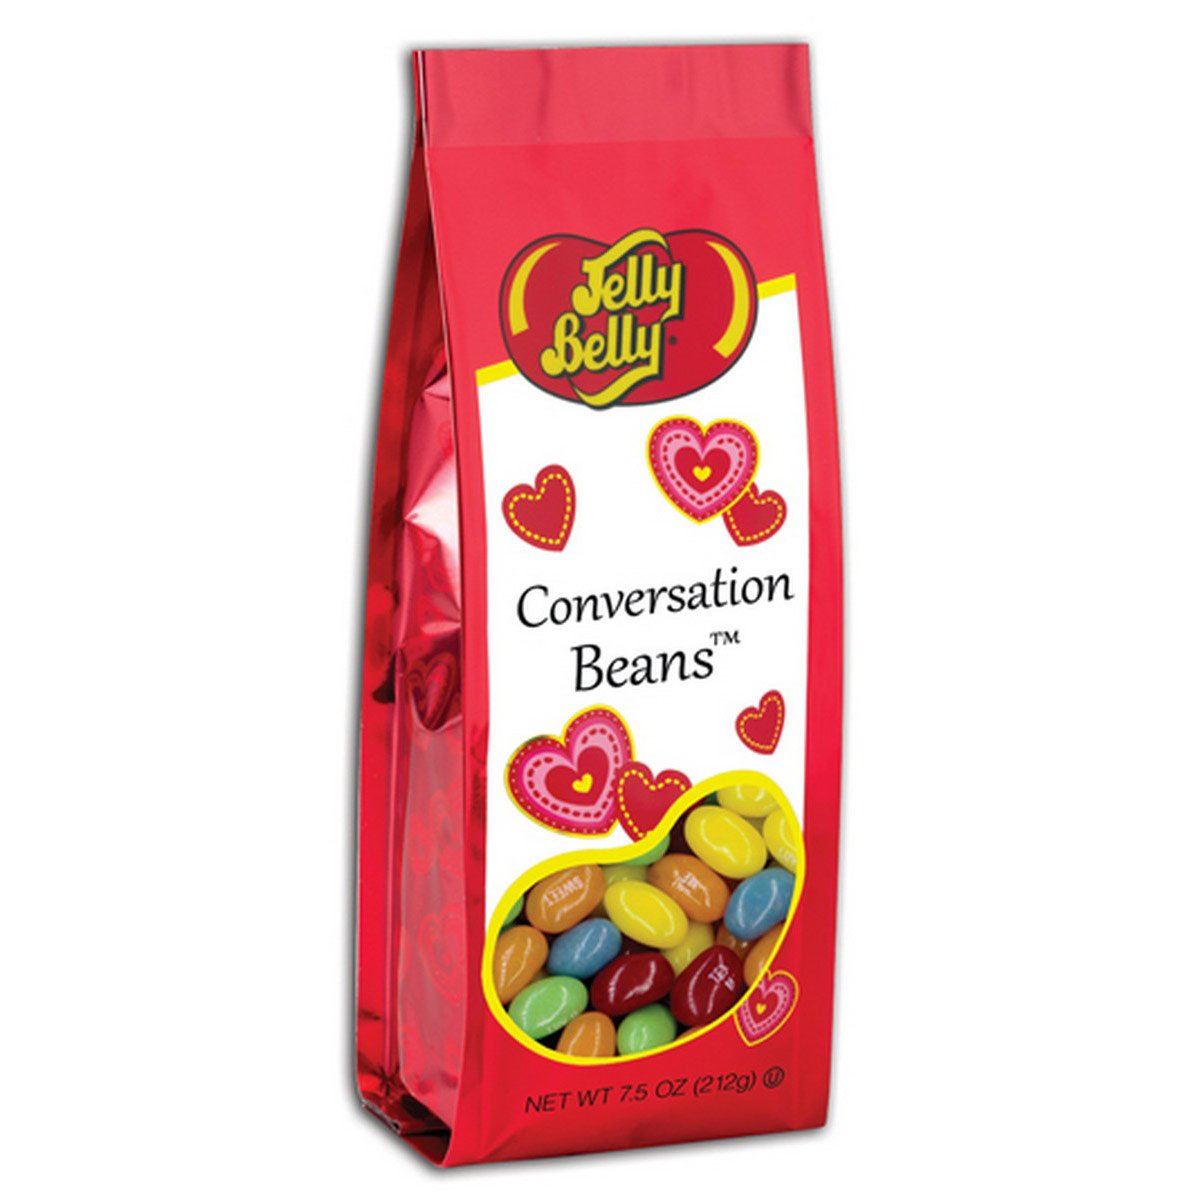 Jelly Belly Conversation Beans® - 7.5 oz Gift Bag